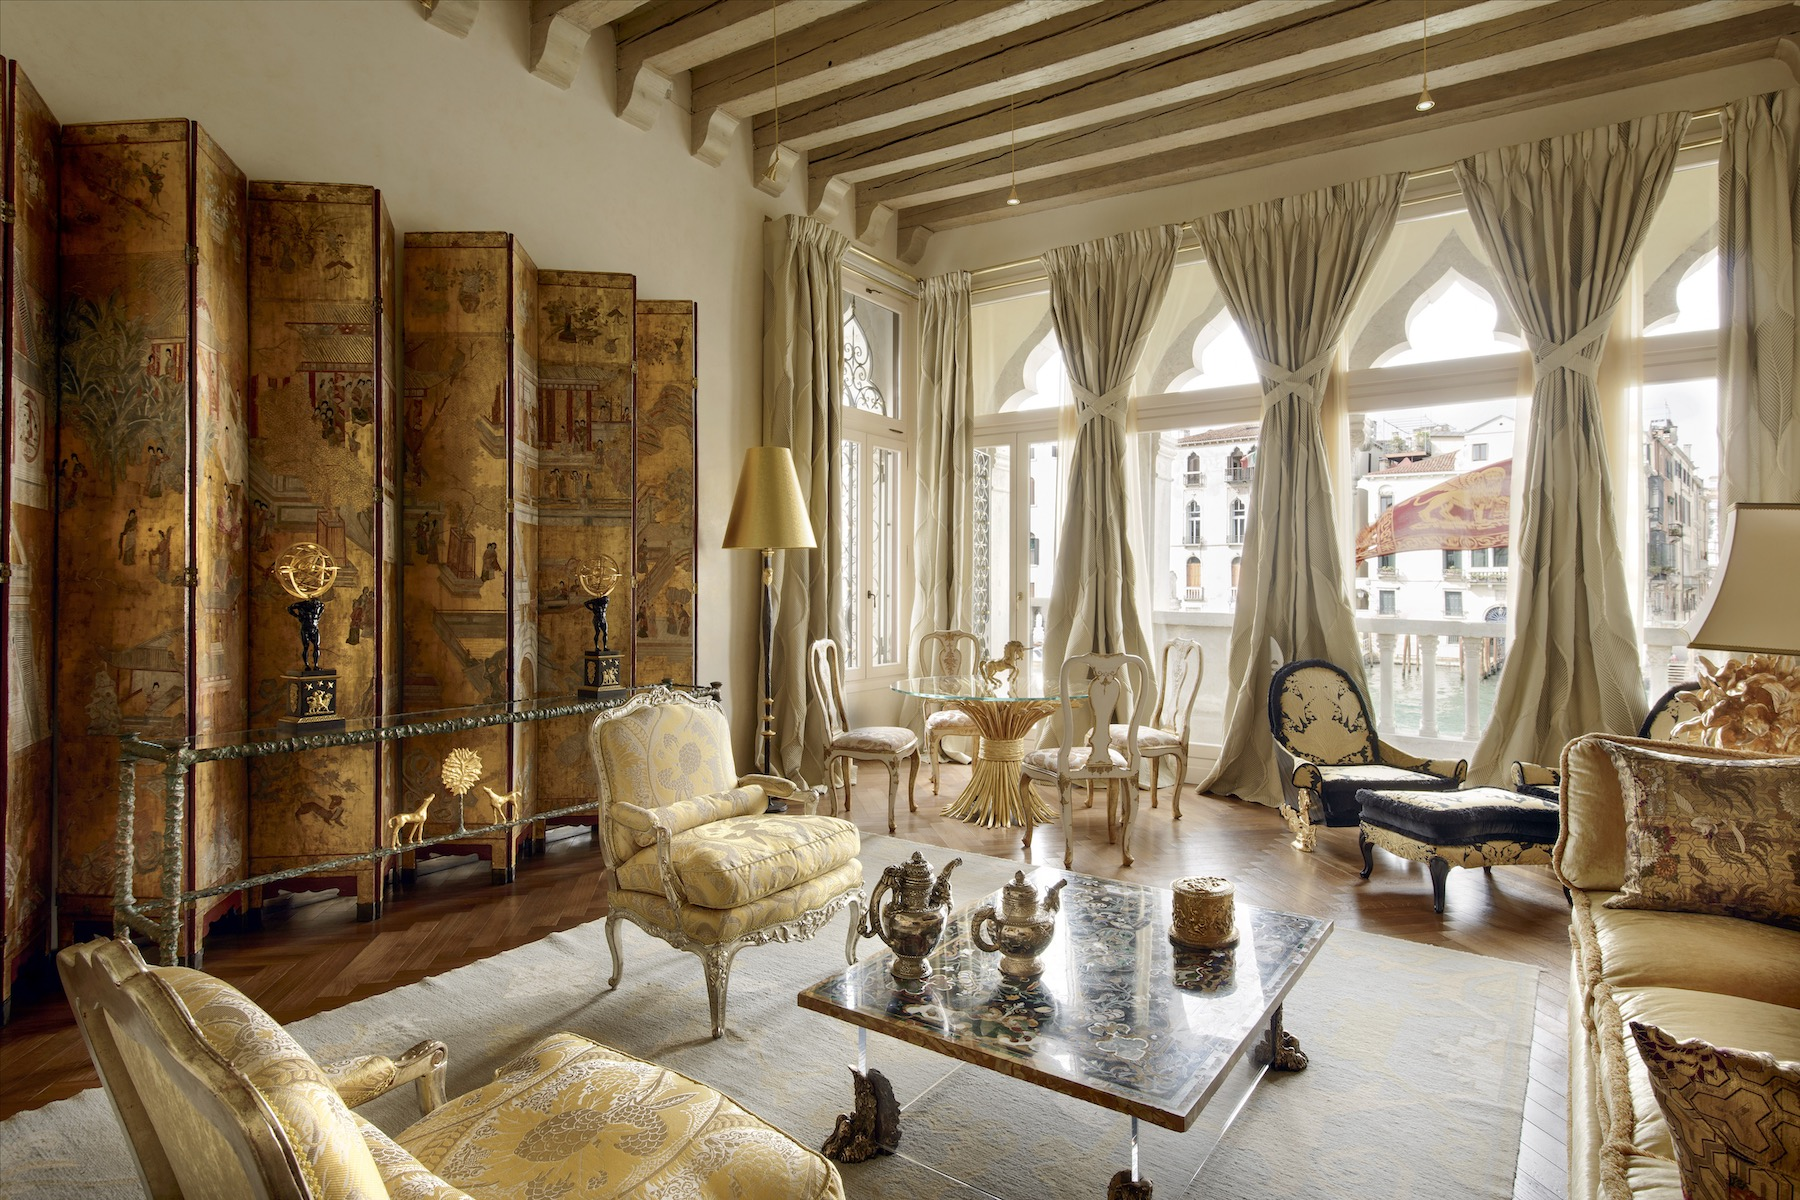 Apartment for Sale at Orio Grand Canal Dorsoduro Venice, Venice Italy